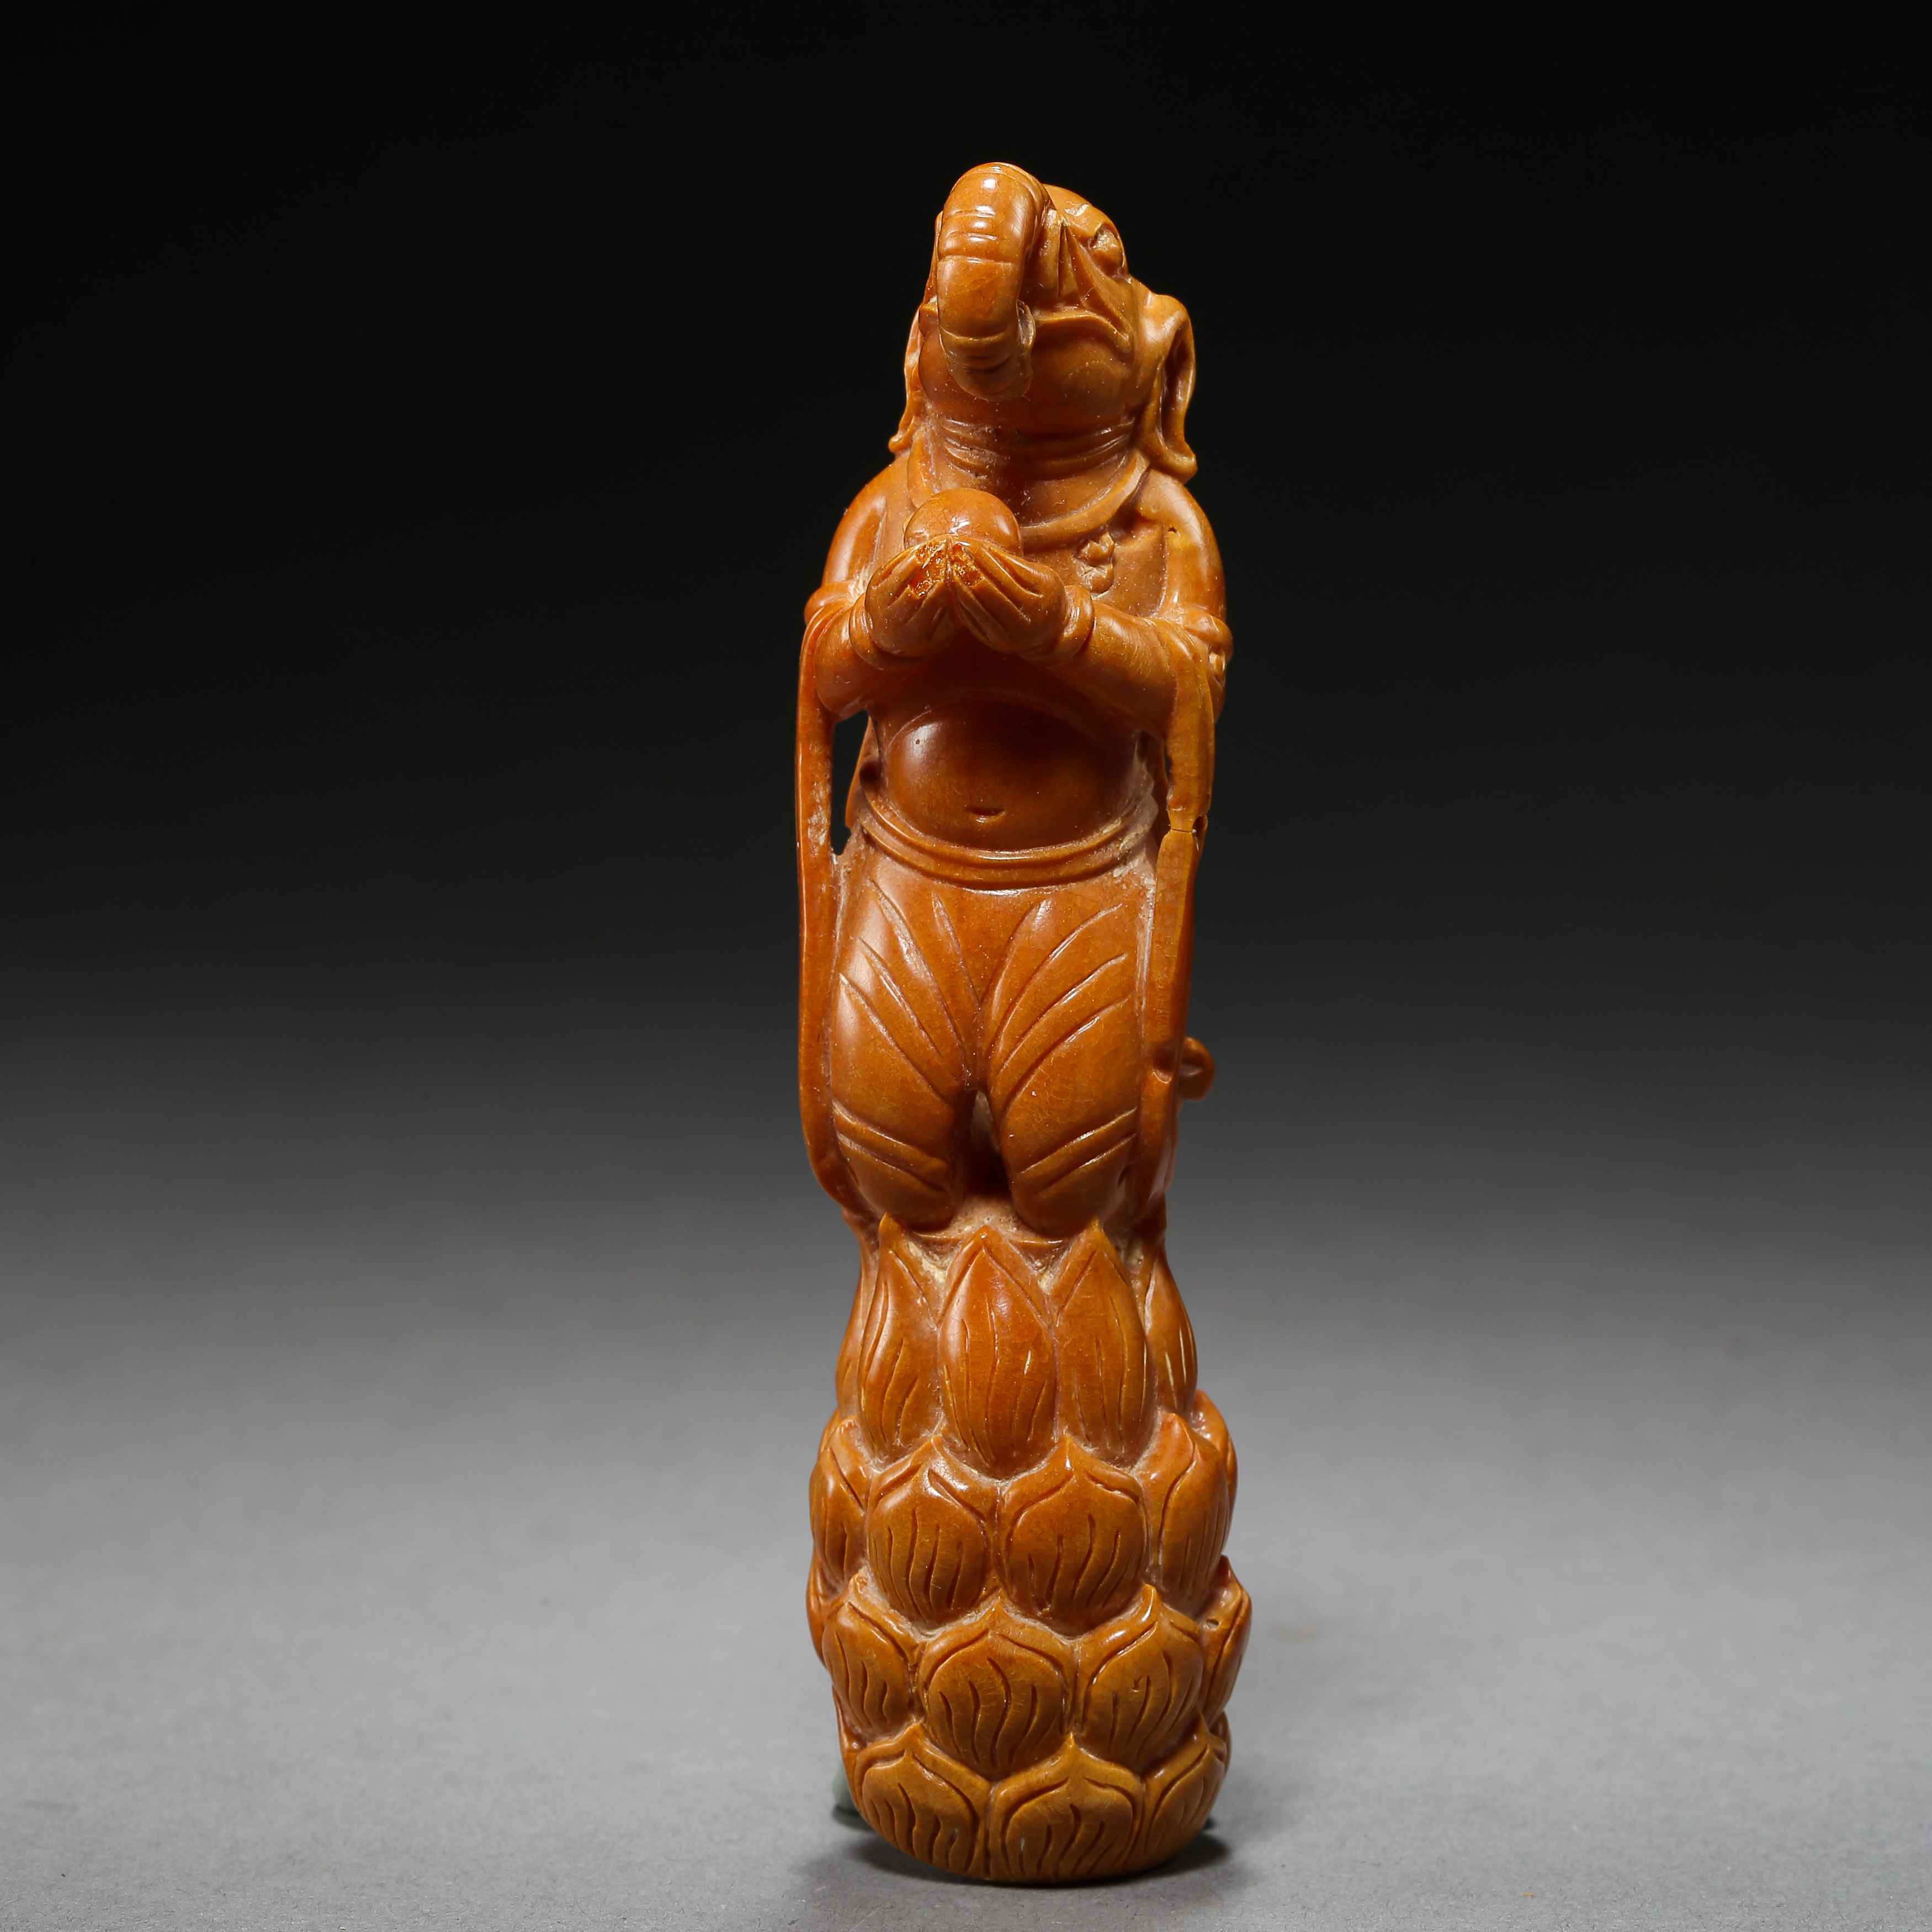 BEESWAX ELEPHANT, LIAO OR JIN DYNASTIES, CHINA - Image 6 of 10